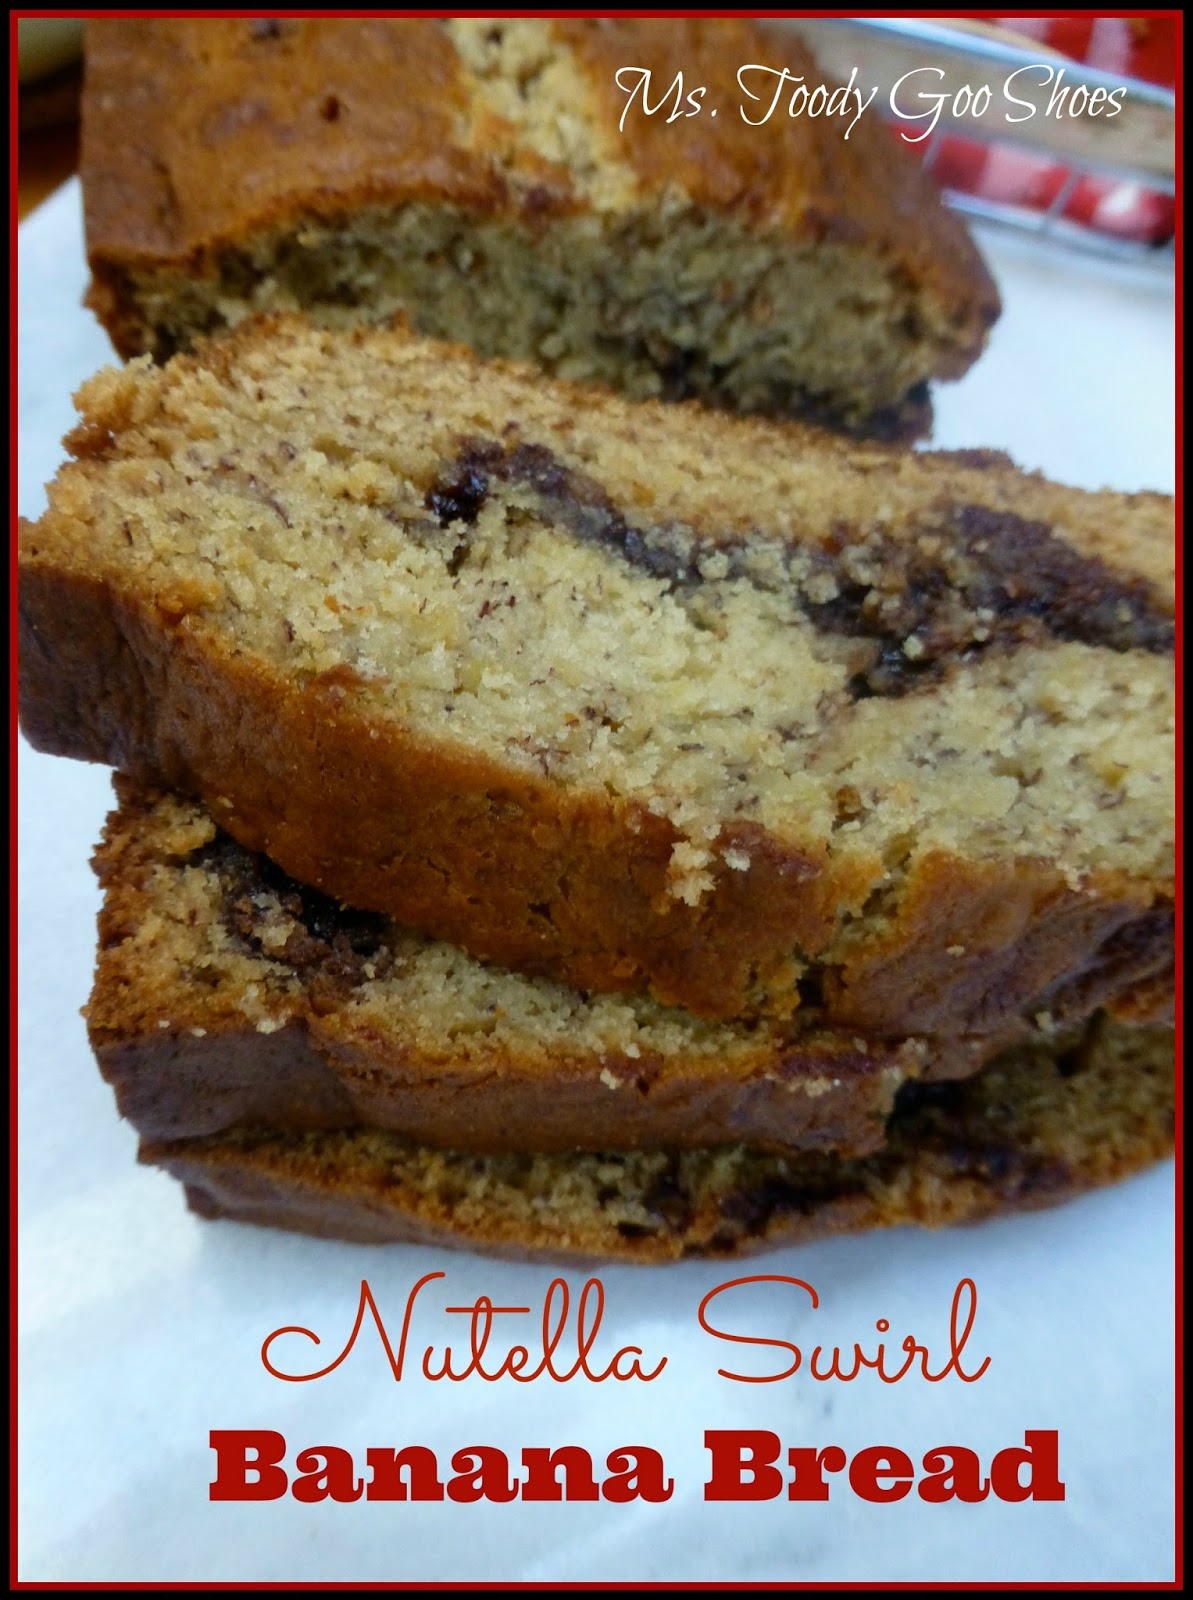 Nutella Swirl Banana Bread --- Ms. Toody Goo Shoes